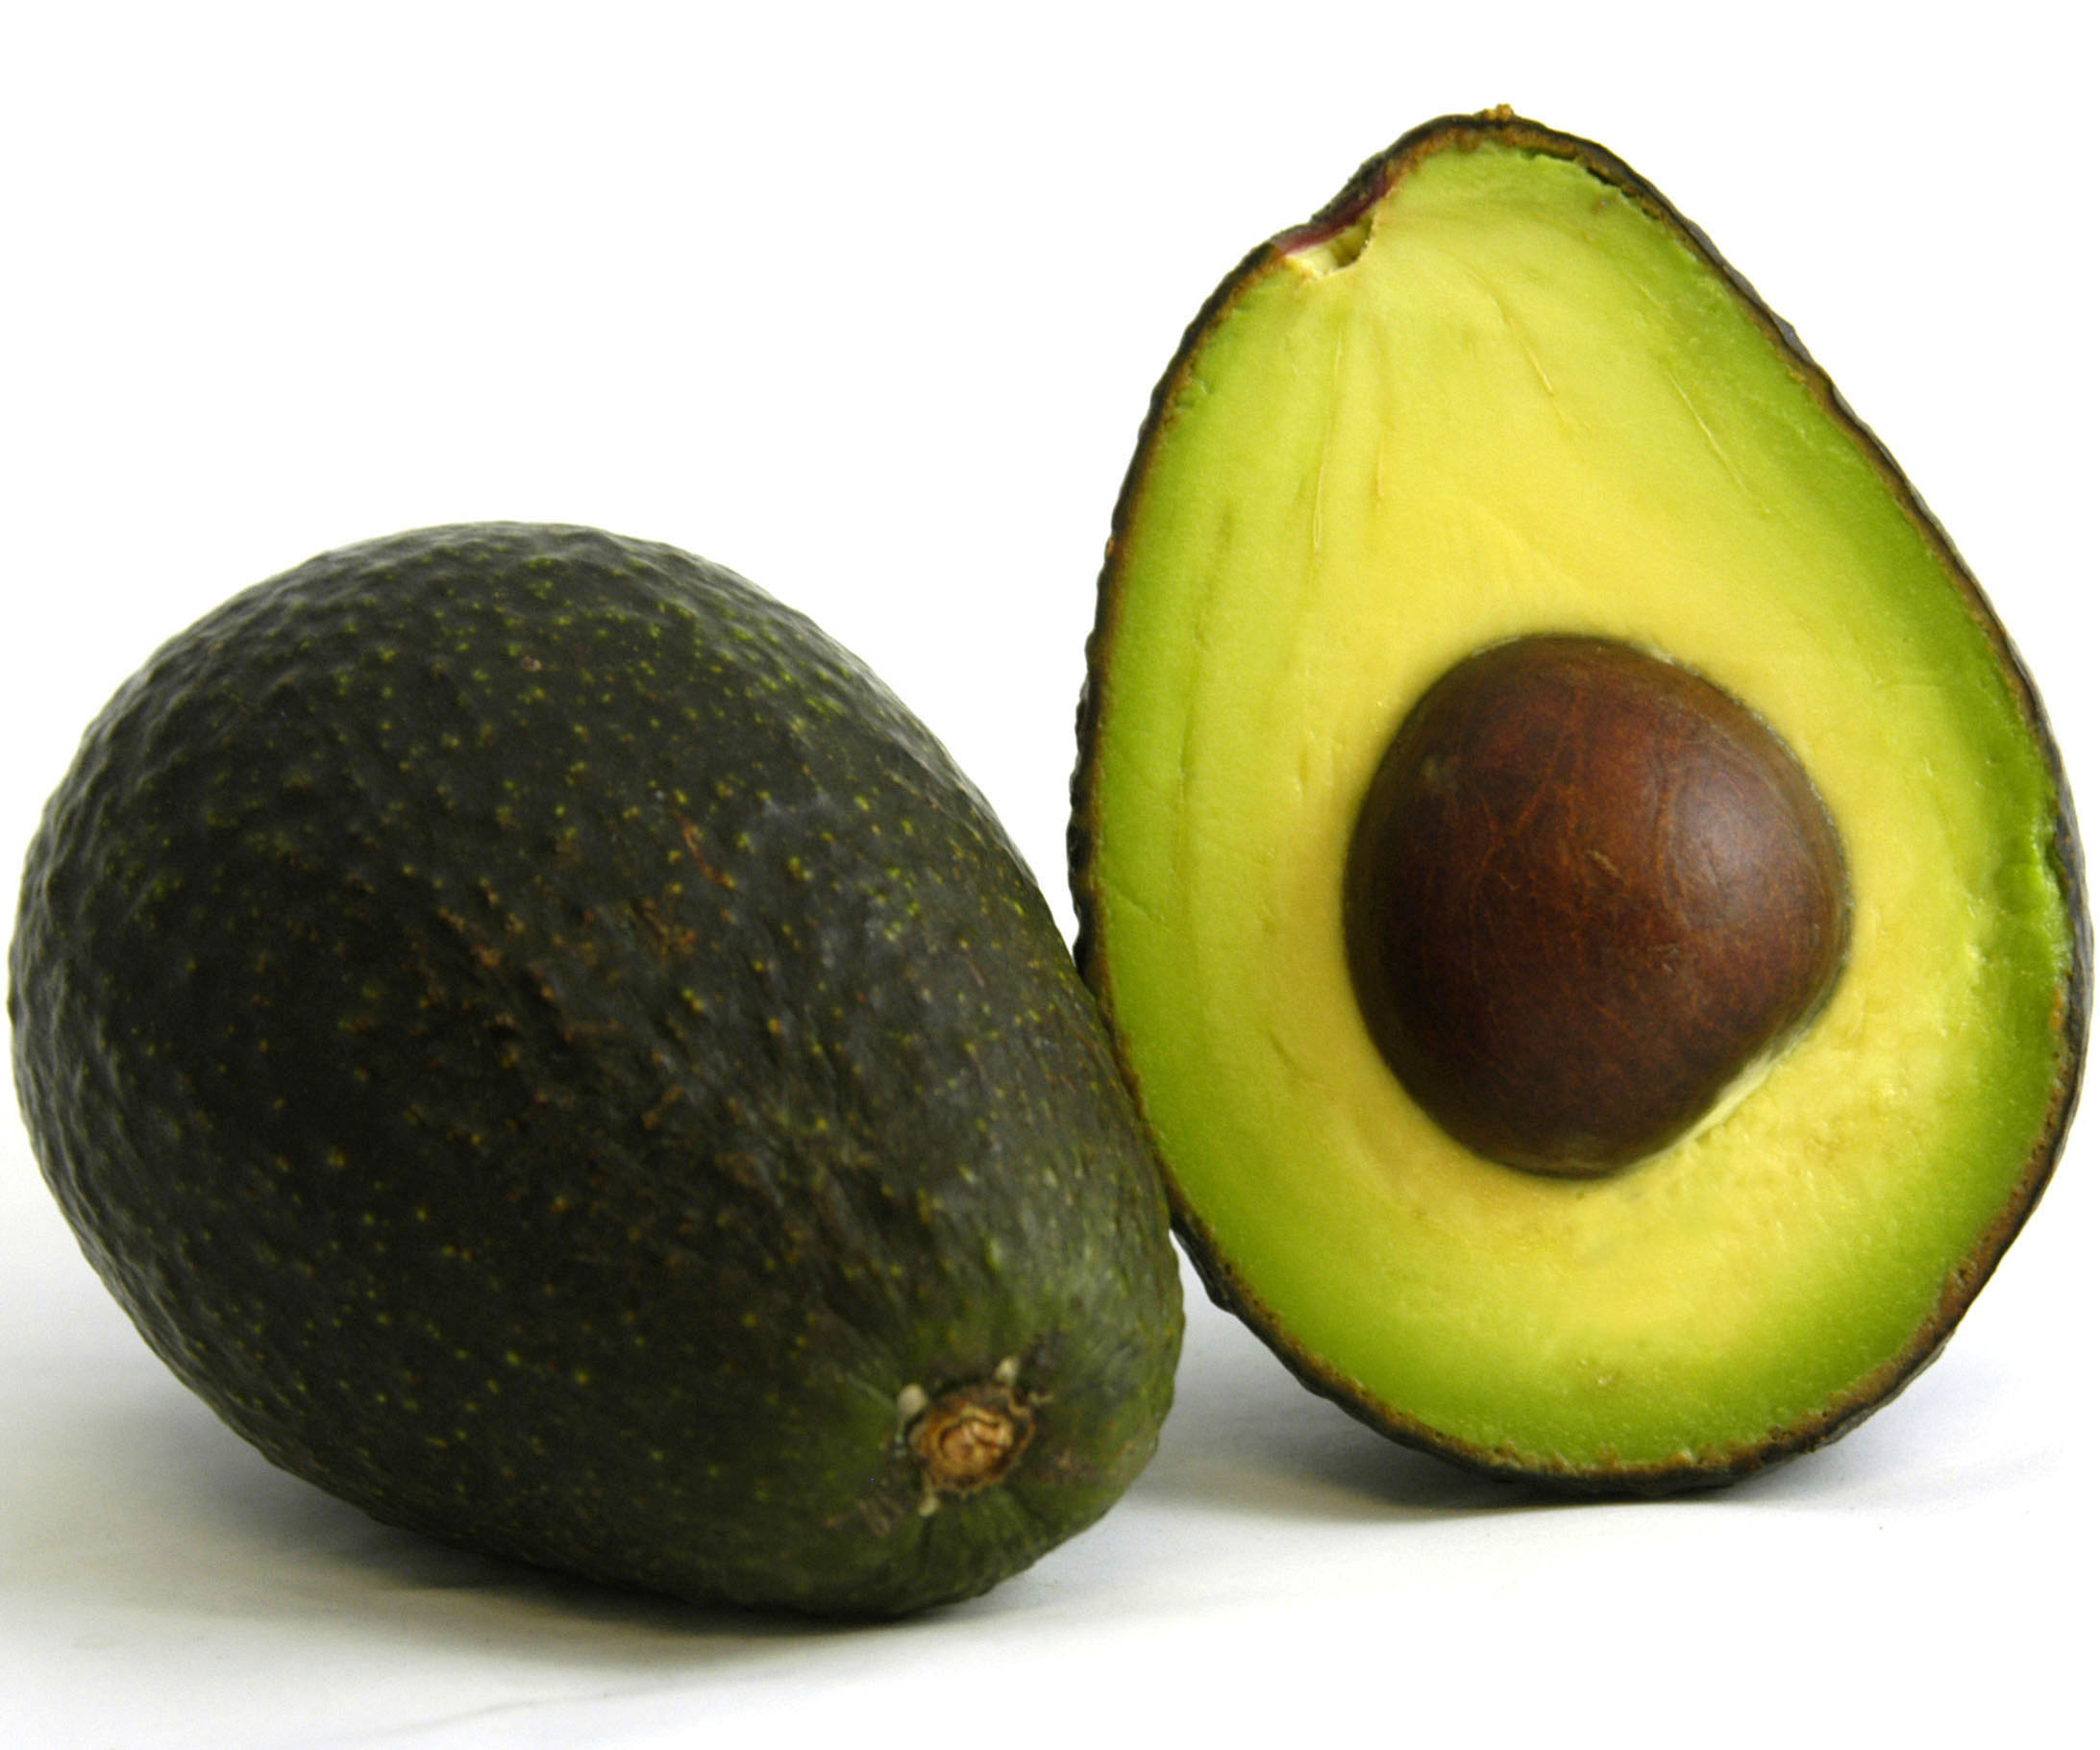 4 Reasons Avocado Is About to Become Your New Favorite Beauty Trick